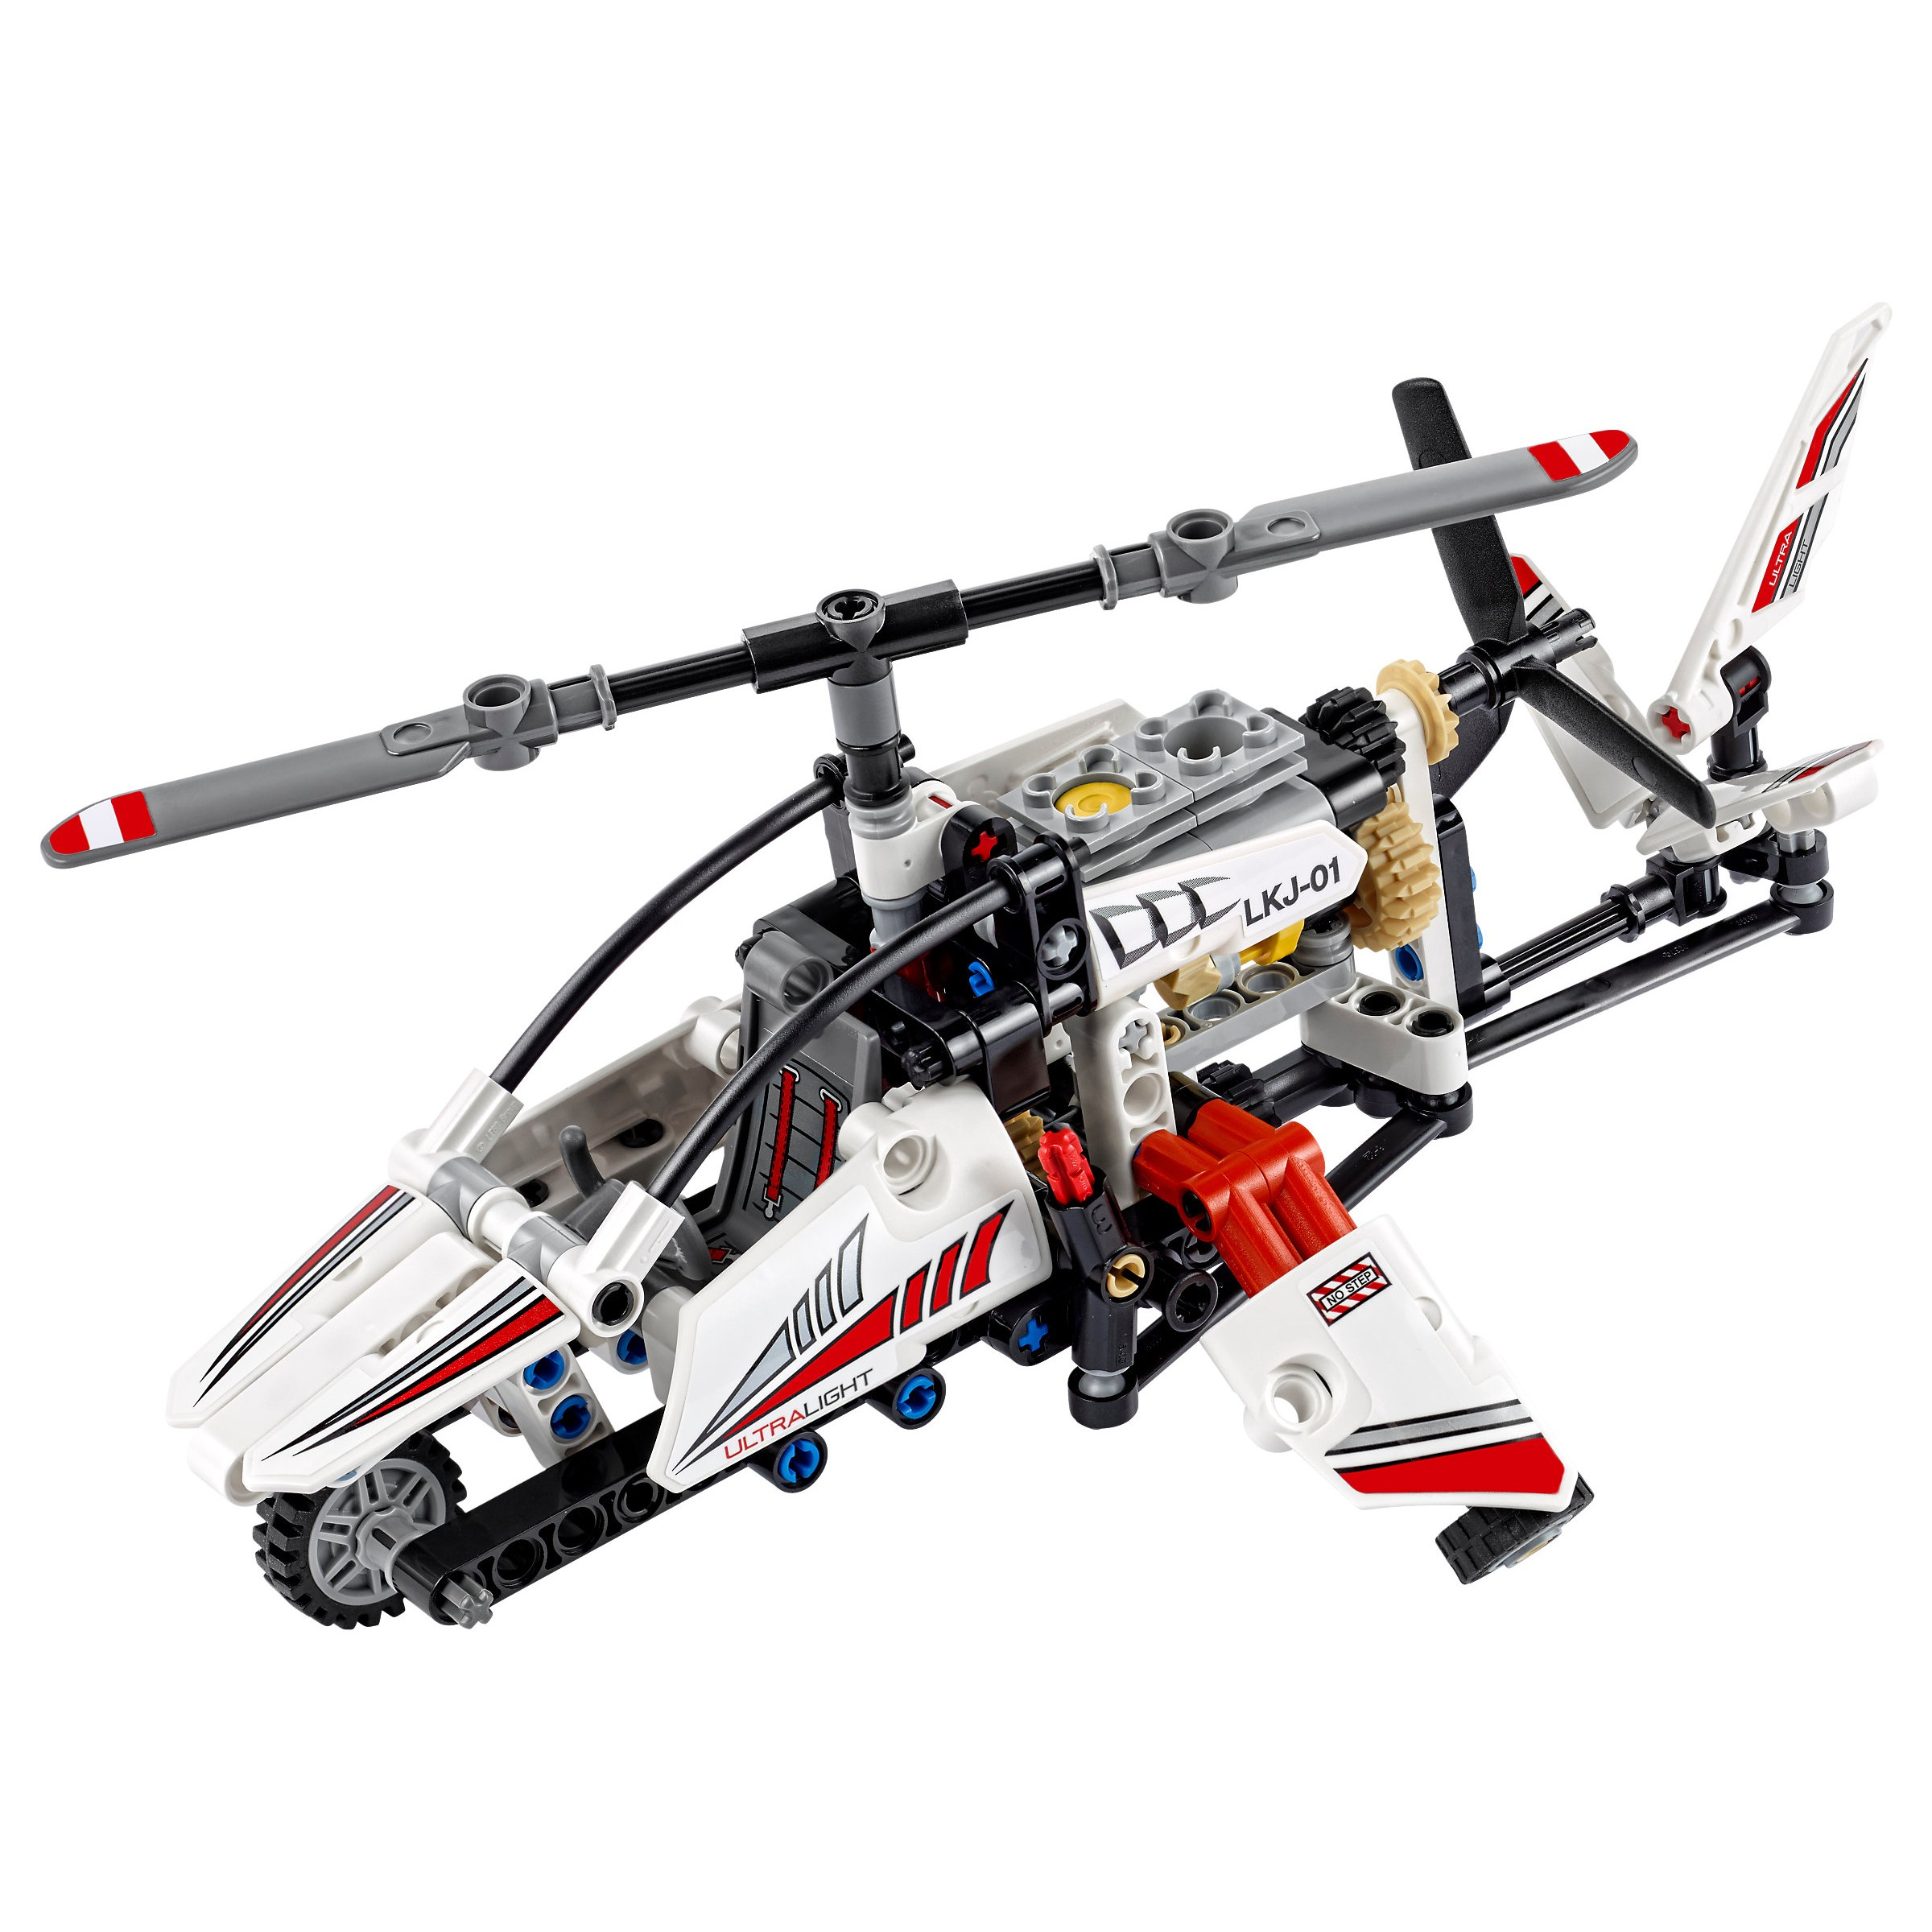 lego 42057 technic ultralight helicopter at hobby warehouse. Black Bedroom Furniture Sets. Home Design Ideas